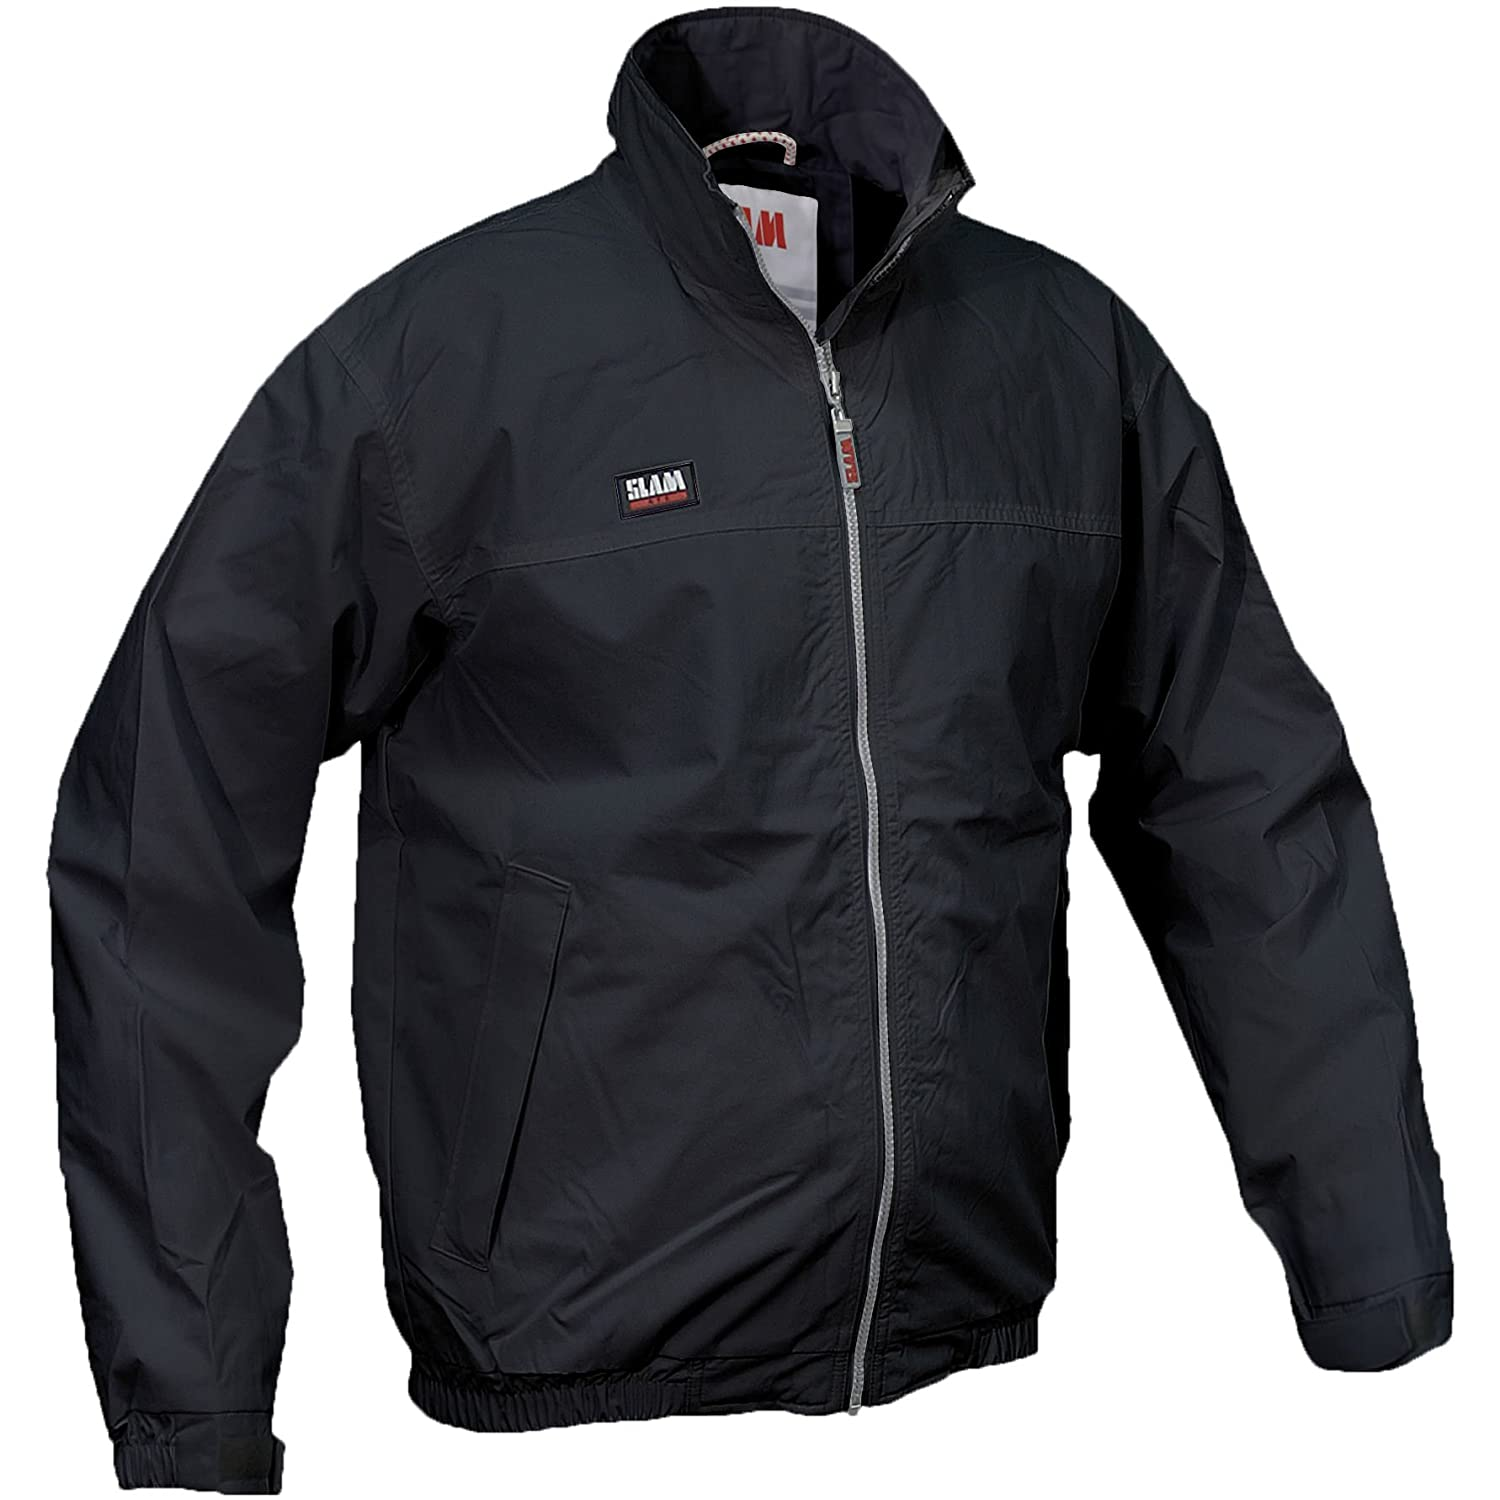 Slam Summer Sailing Jacket - 3 Colours/Sml - 2XL - Navy - 2XL at Amazon Mens Clothing store: